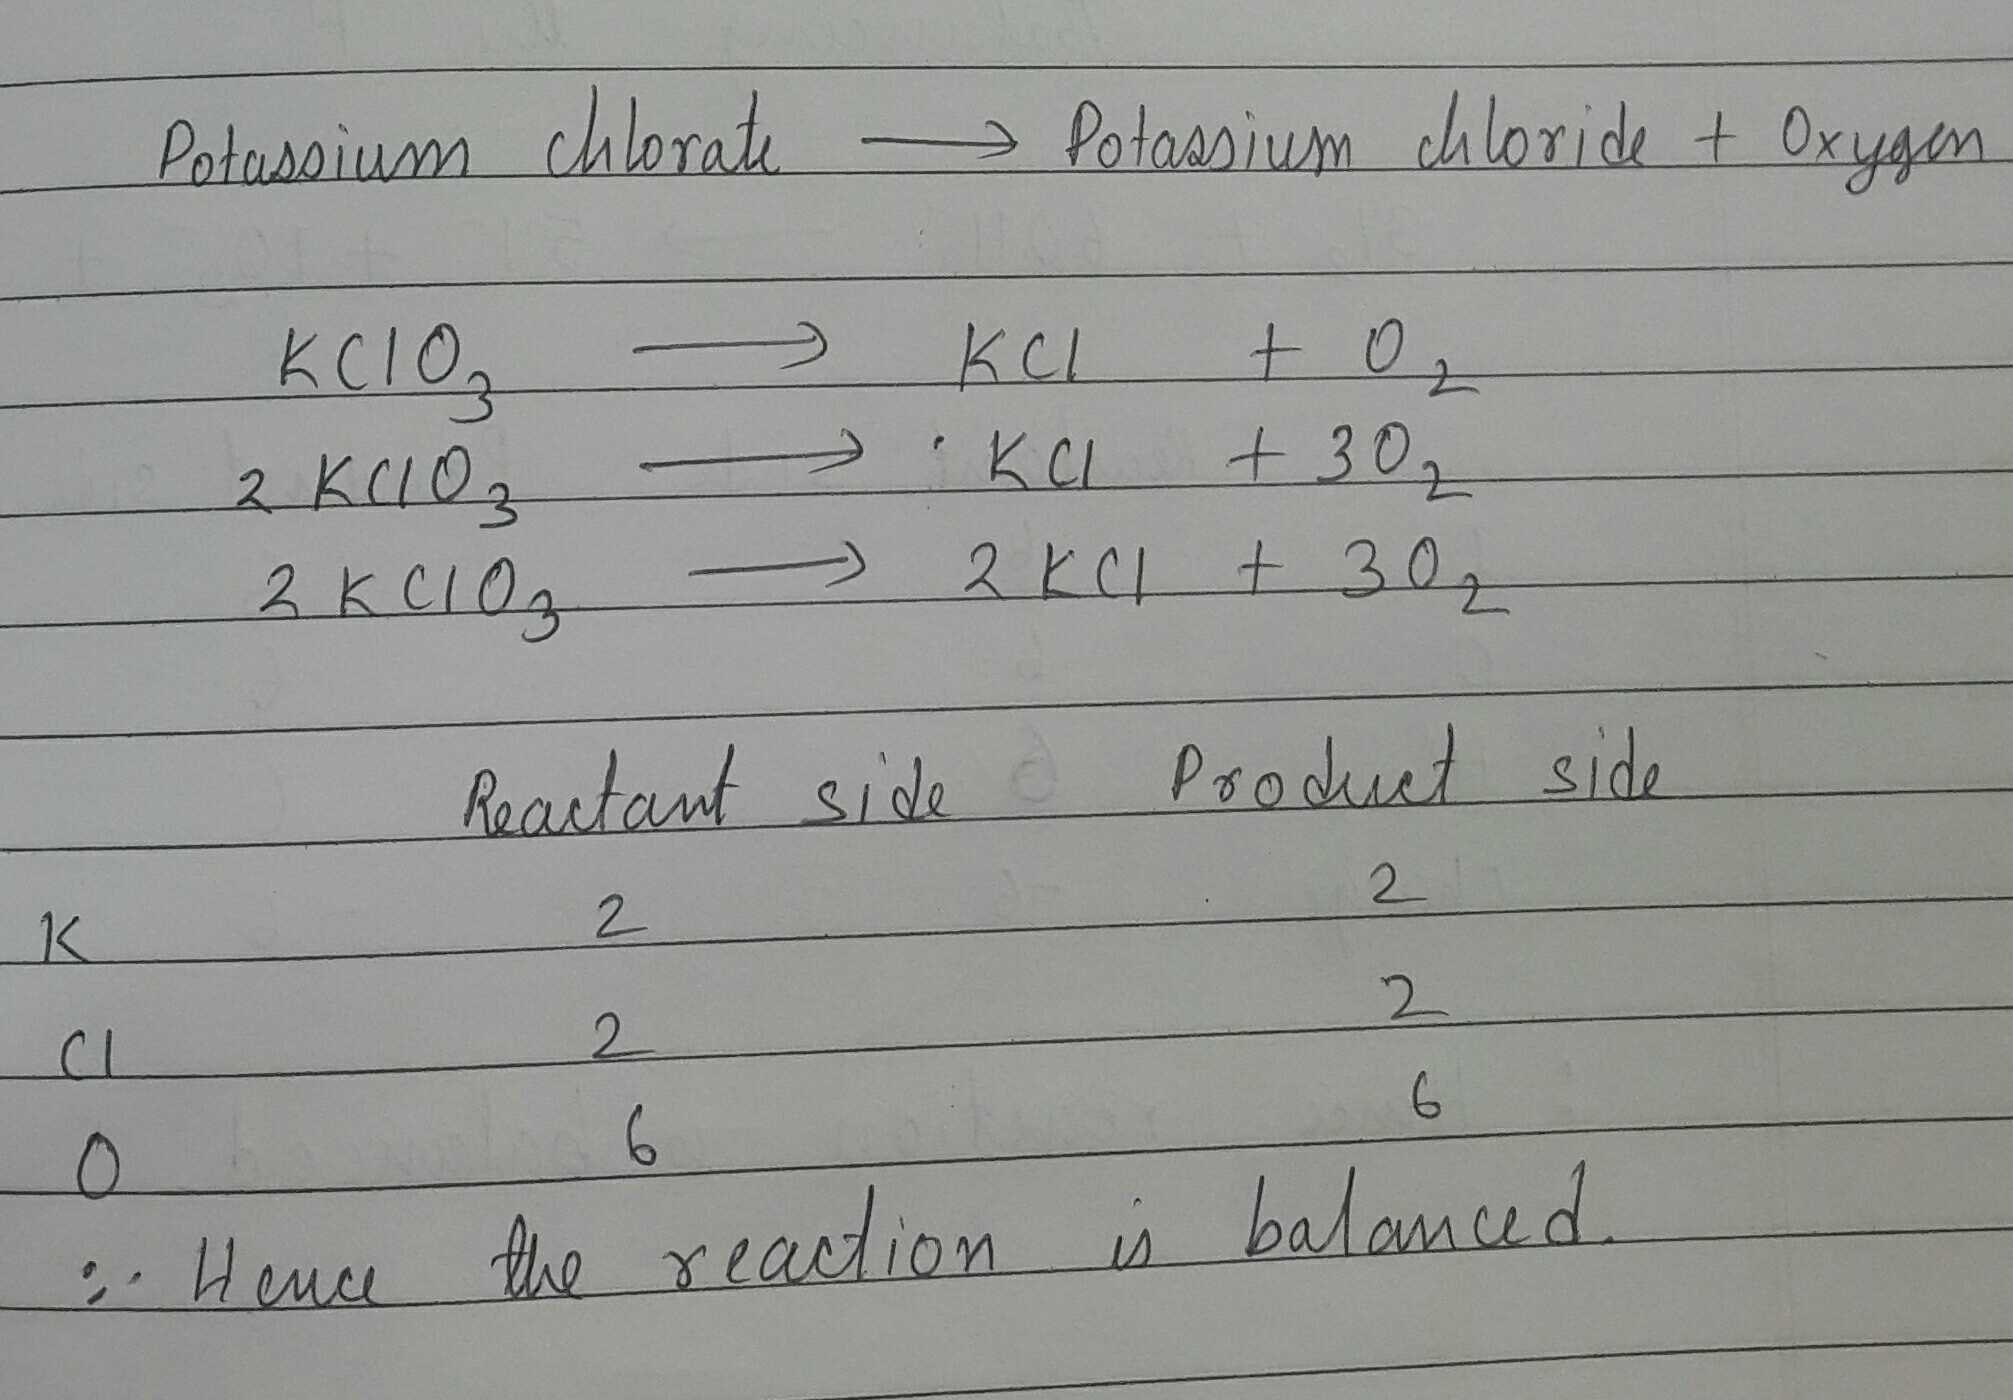 Write balanced chemical equations for the followin toppr.com